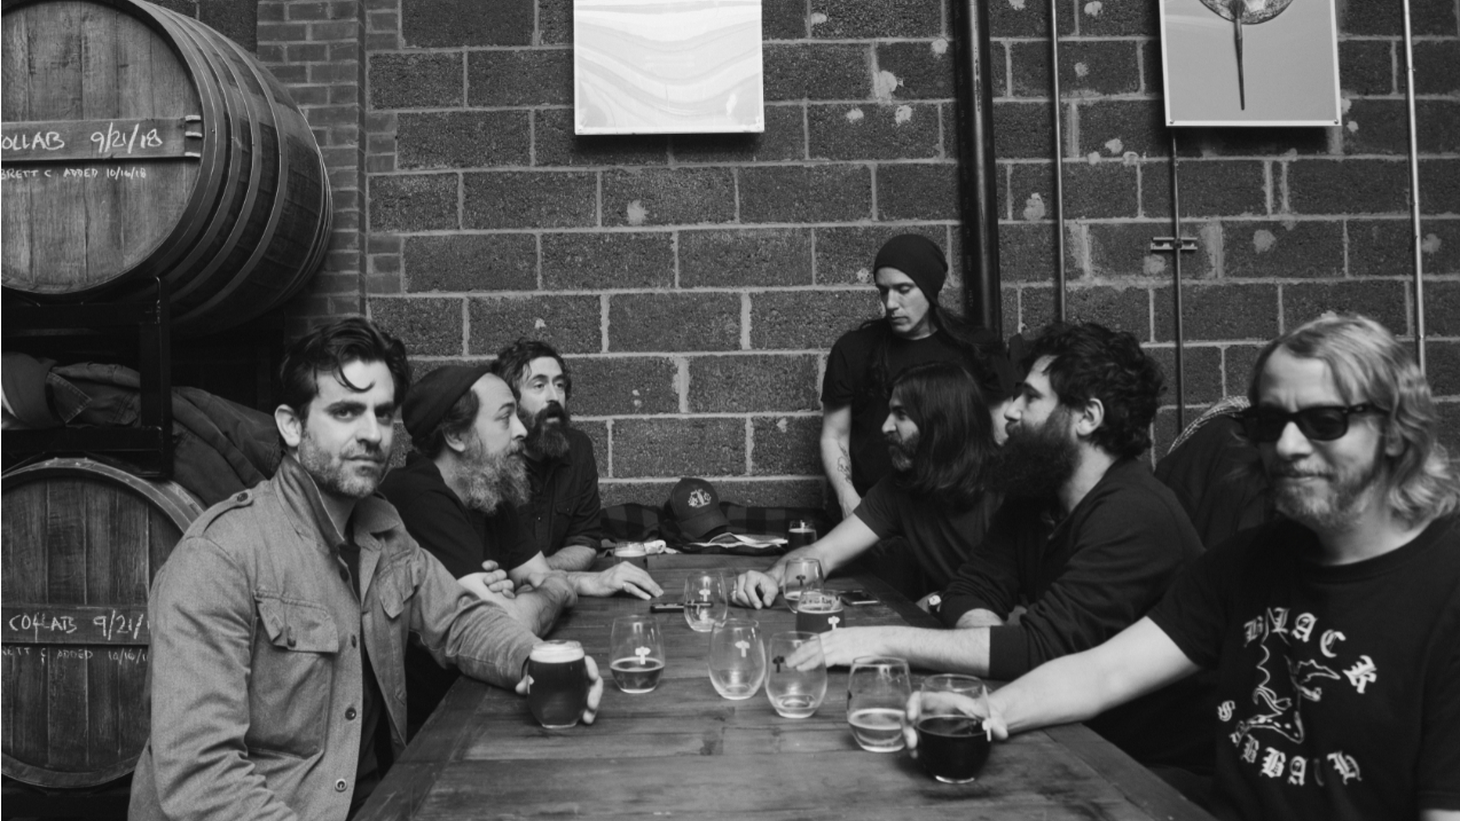 """Budos Band continue their cinematic outpour of Afro-psychedelic rock on their sixth studio album """"Long In The Tooth ."""" After 15 years together, you can still hear the joy in their sound as encapsulated on """"Gun Metal Grey."""""""